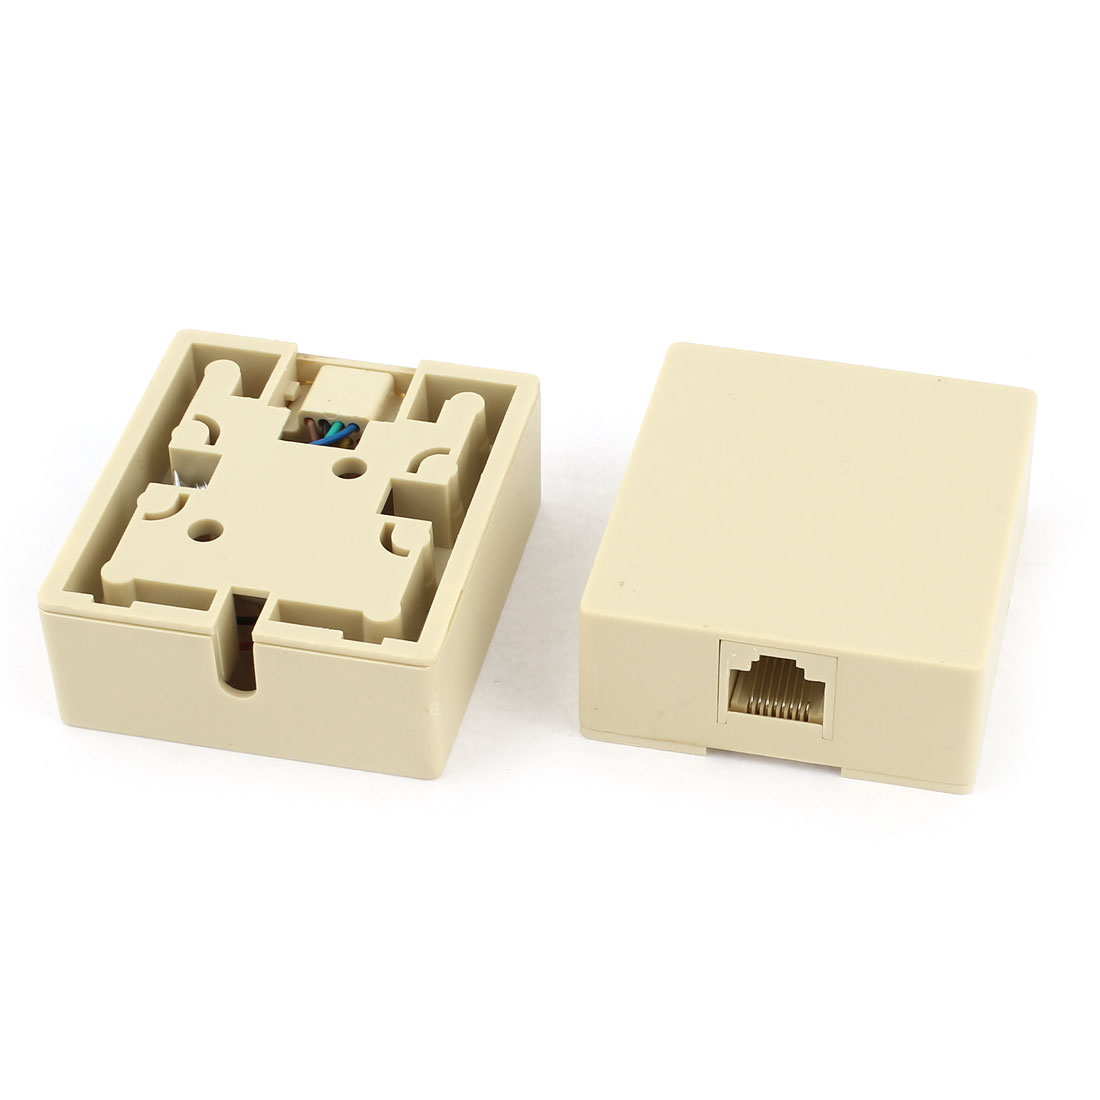 2pcs Surface Mount Box Phone Keystone Single Port Ethernet 8P8C Adapter